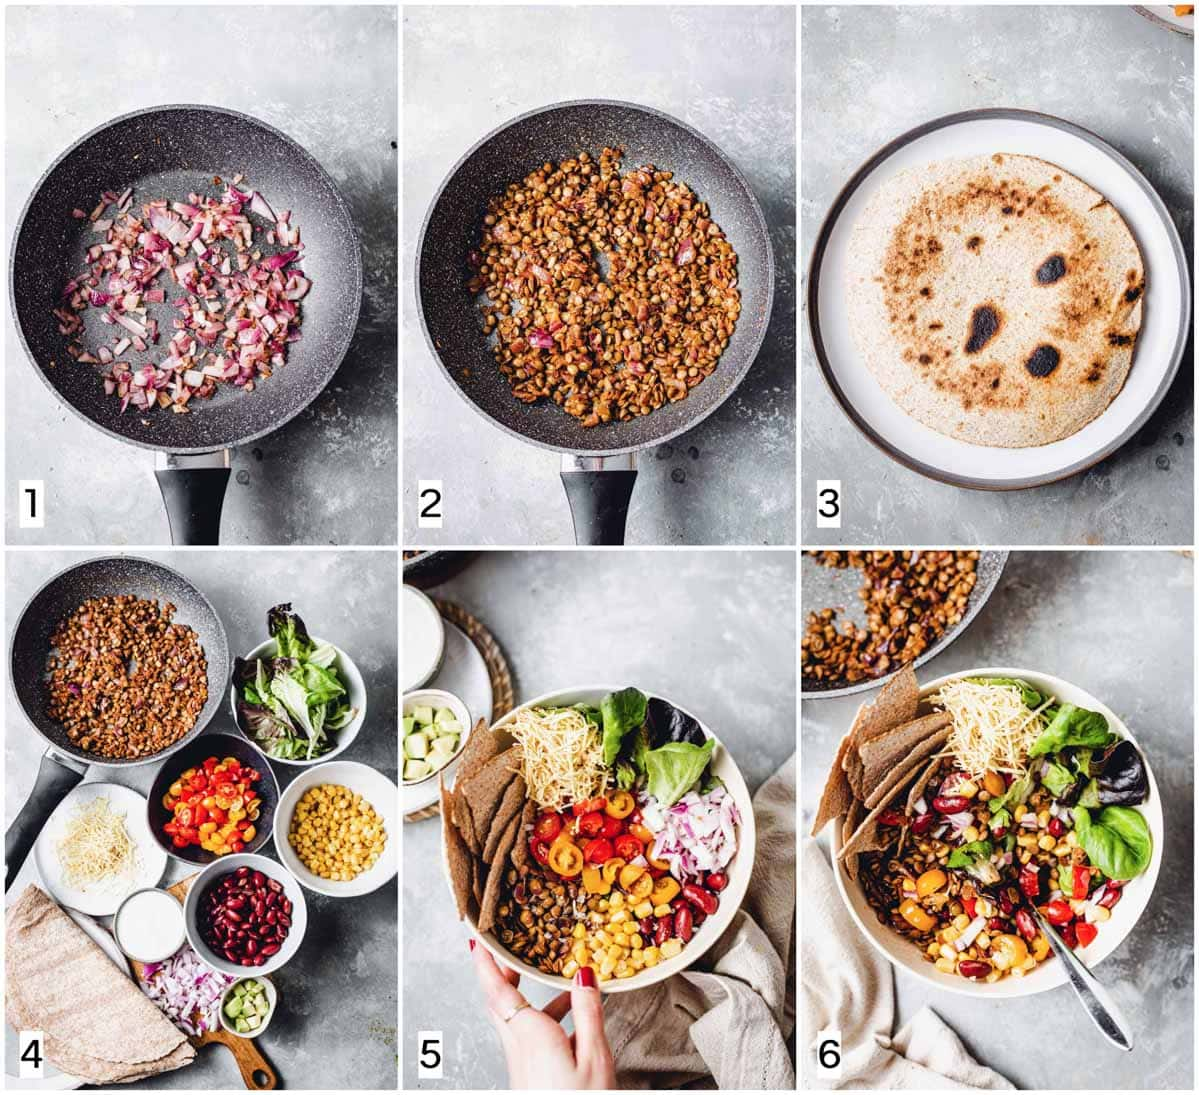 A collage of six images showing six steps in making taco salad.